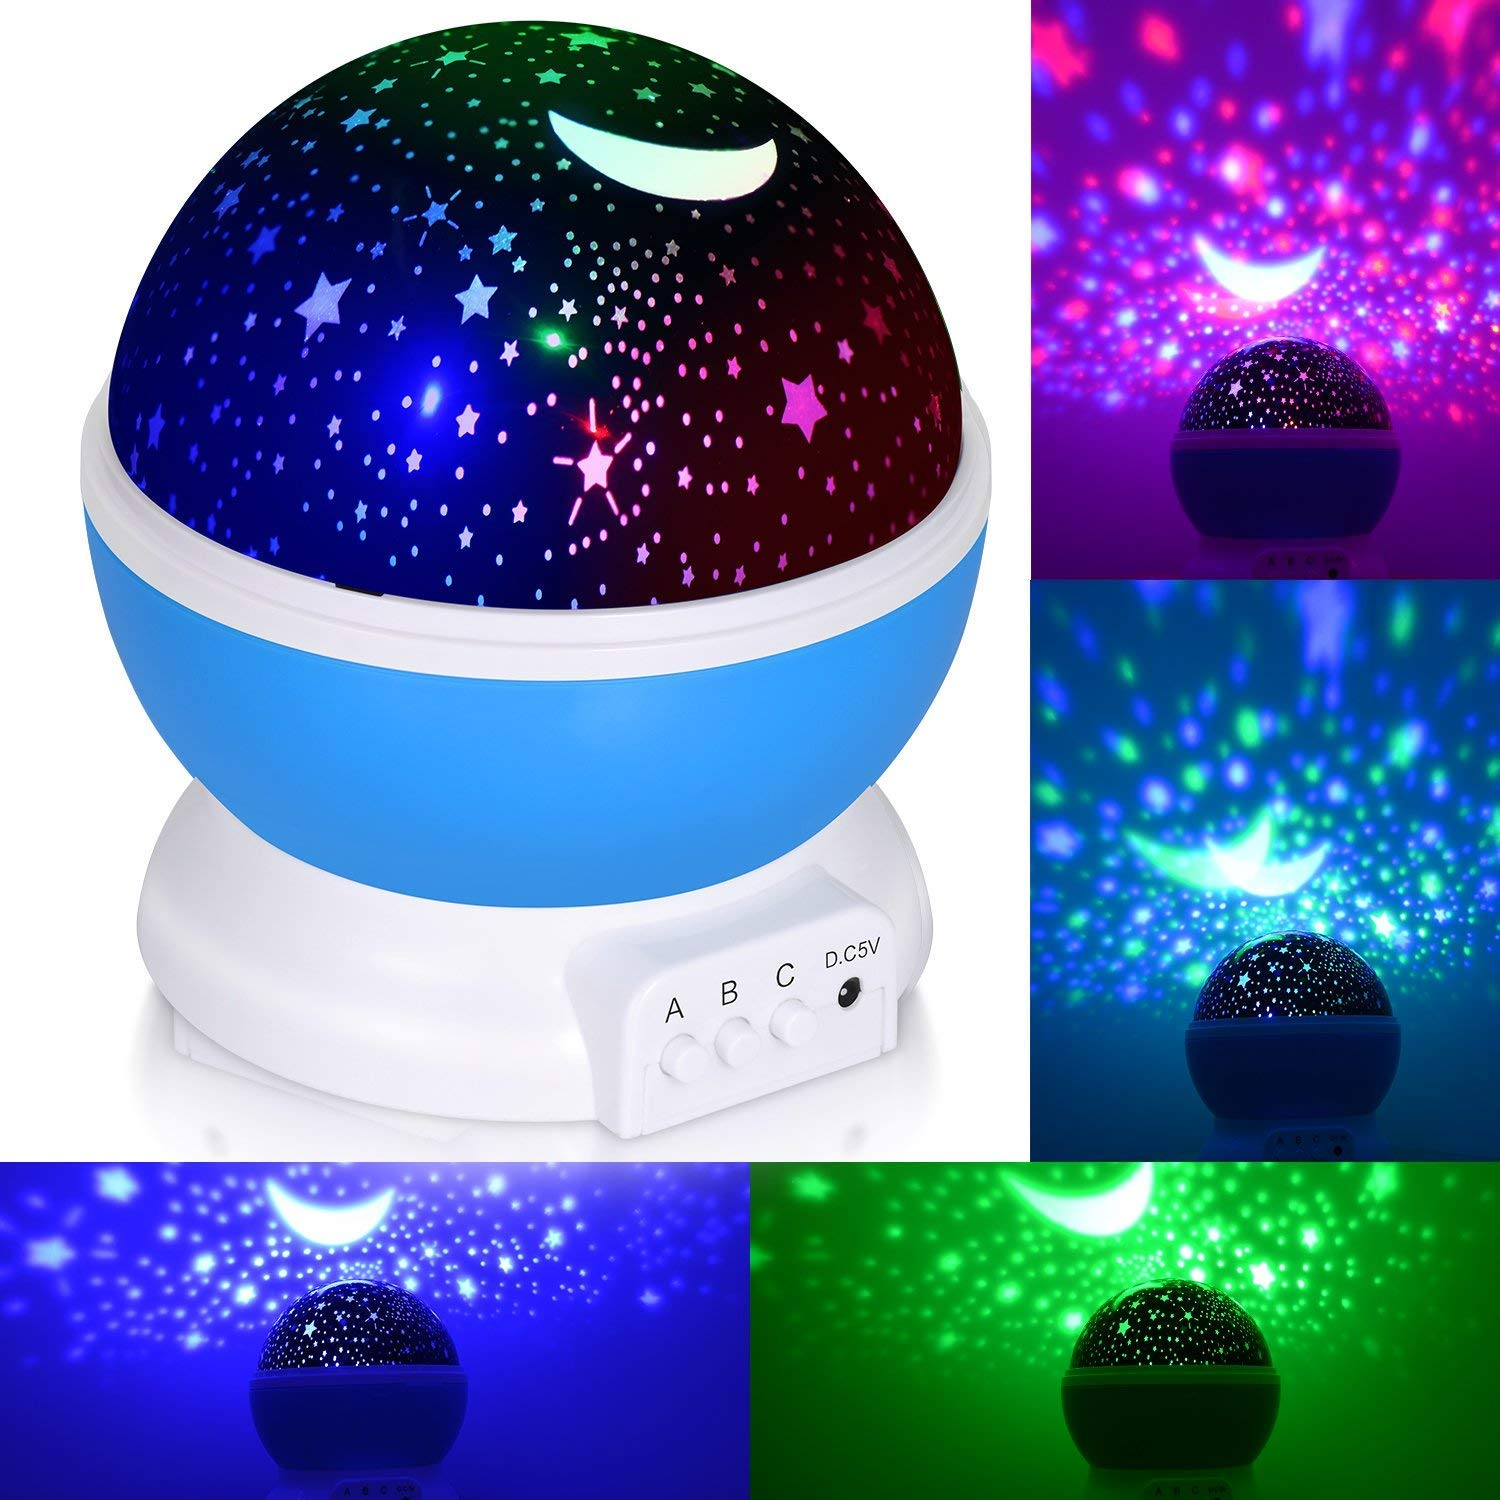 Lights & Lighting Stars Sky Led Night Light Projector Moon Novelty Rotating Table Lamp Battery Usb Night Light For Kids Christmas New Year New Varieties Are Introduced One After Another Led Lamps